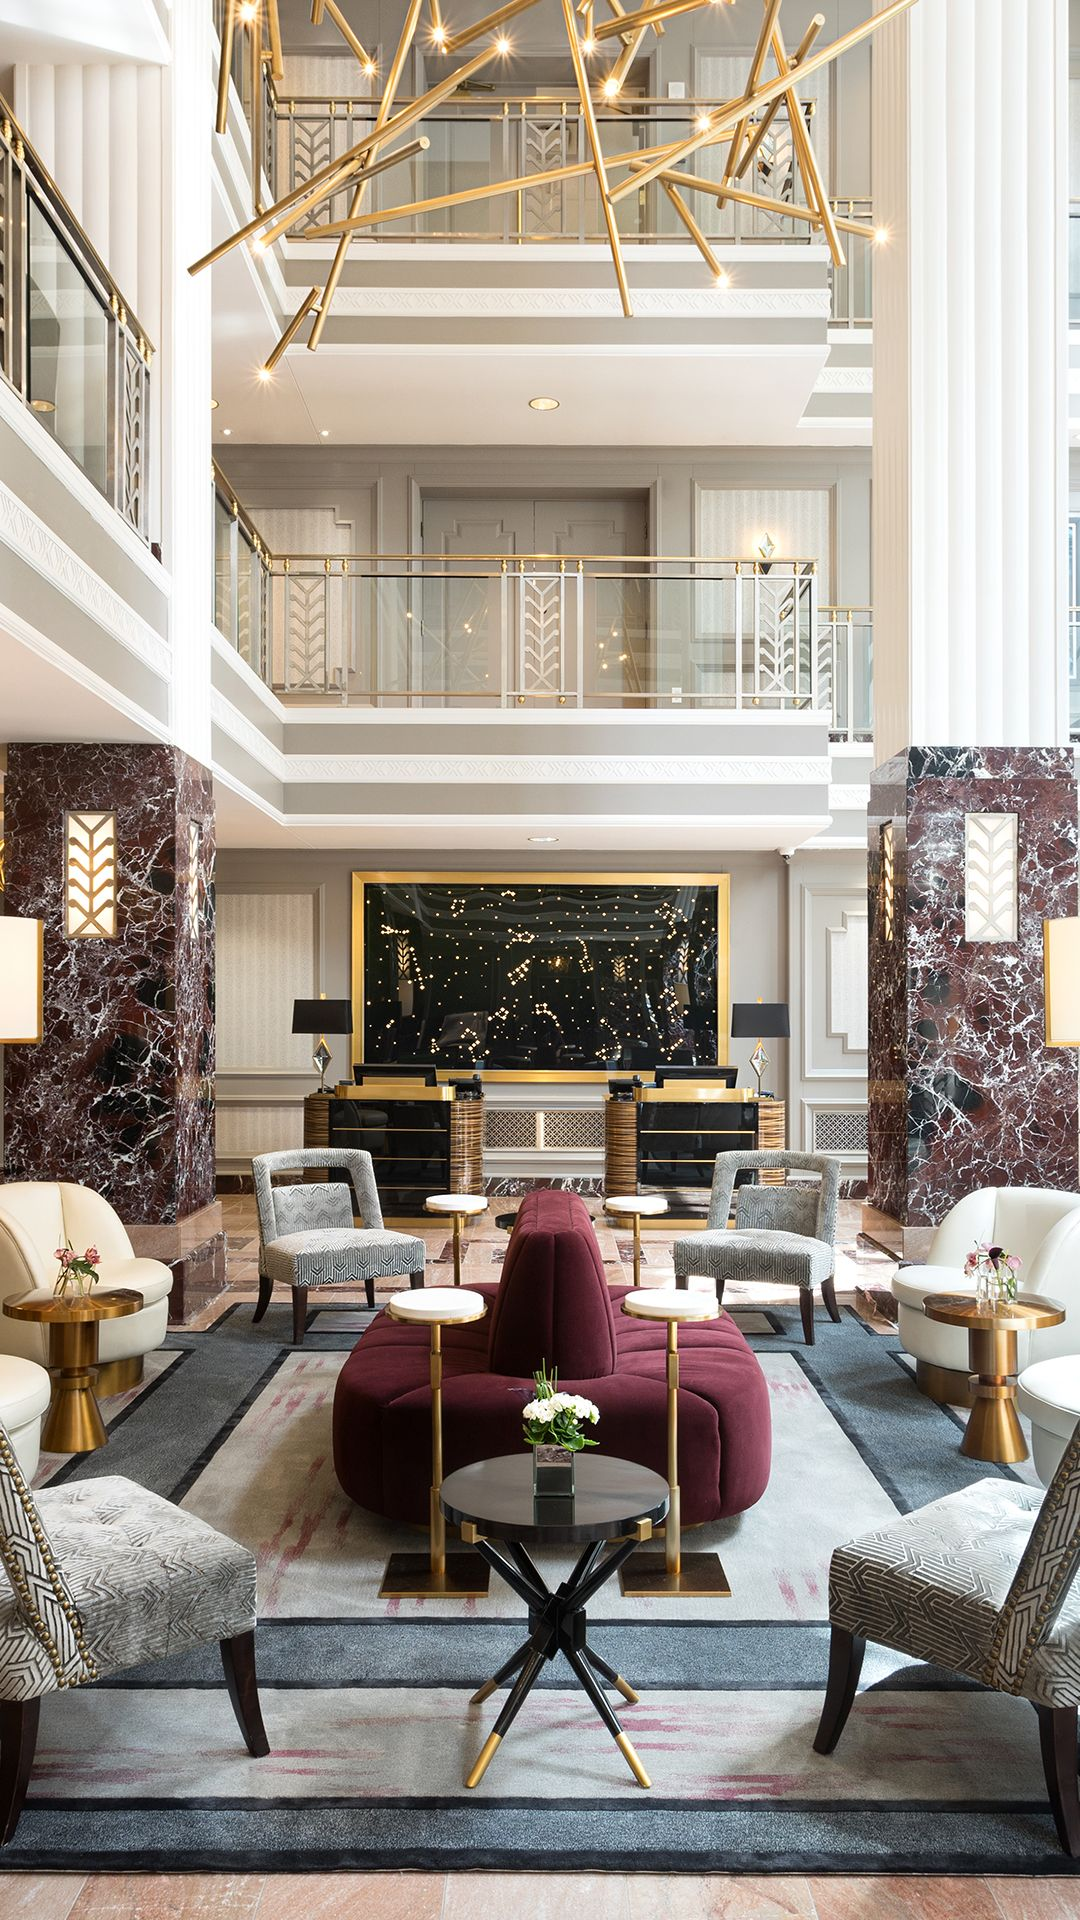 6 Must-Visit Historical Hotel Lobbies | The Scout Guide